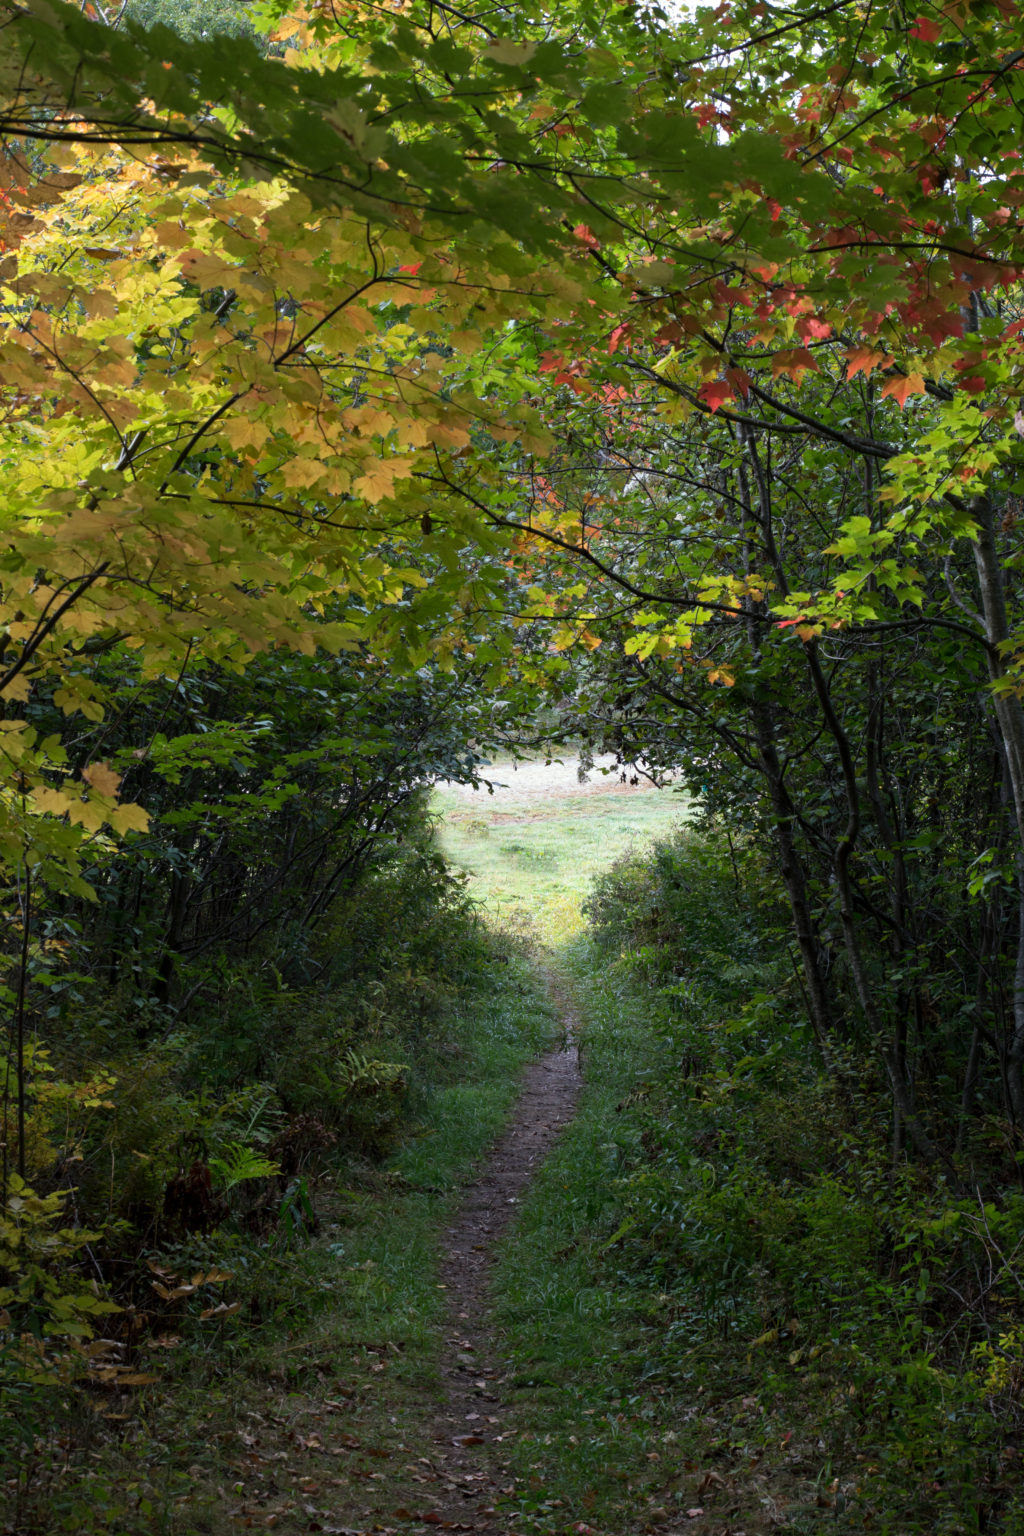 Narrow Path Through Thick Woods